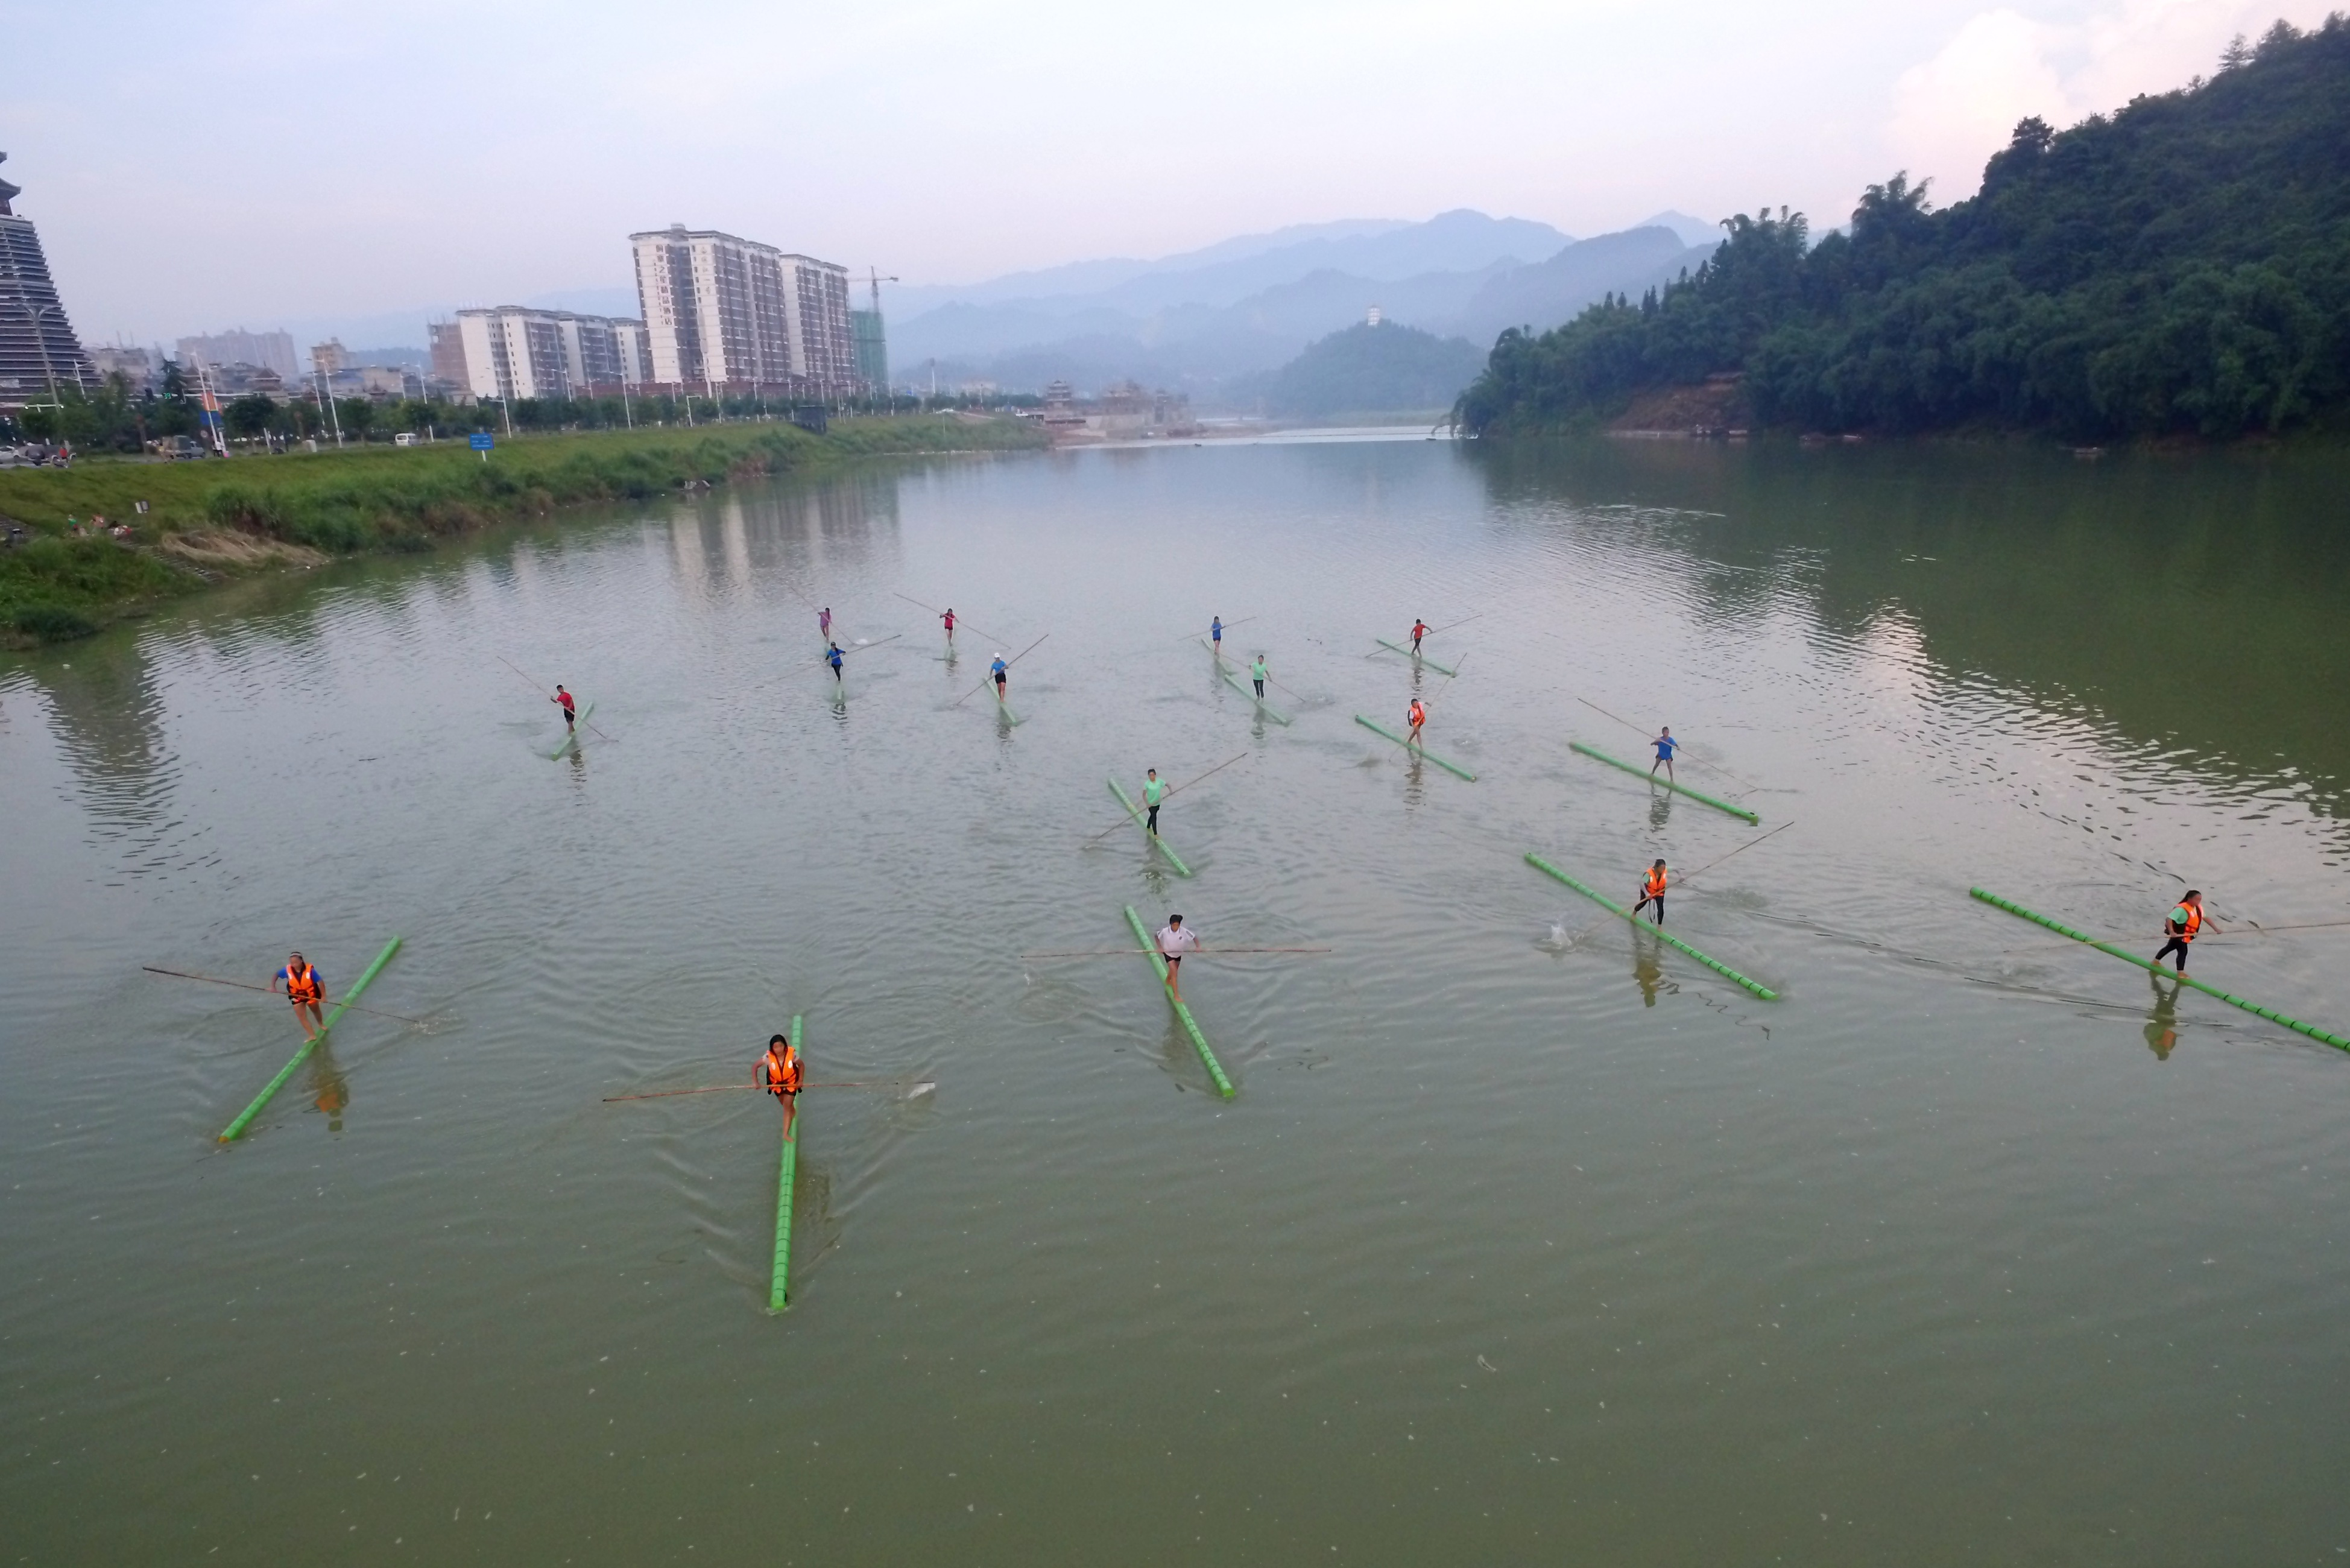 Traditional single bamboo drifting brought to school in China